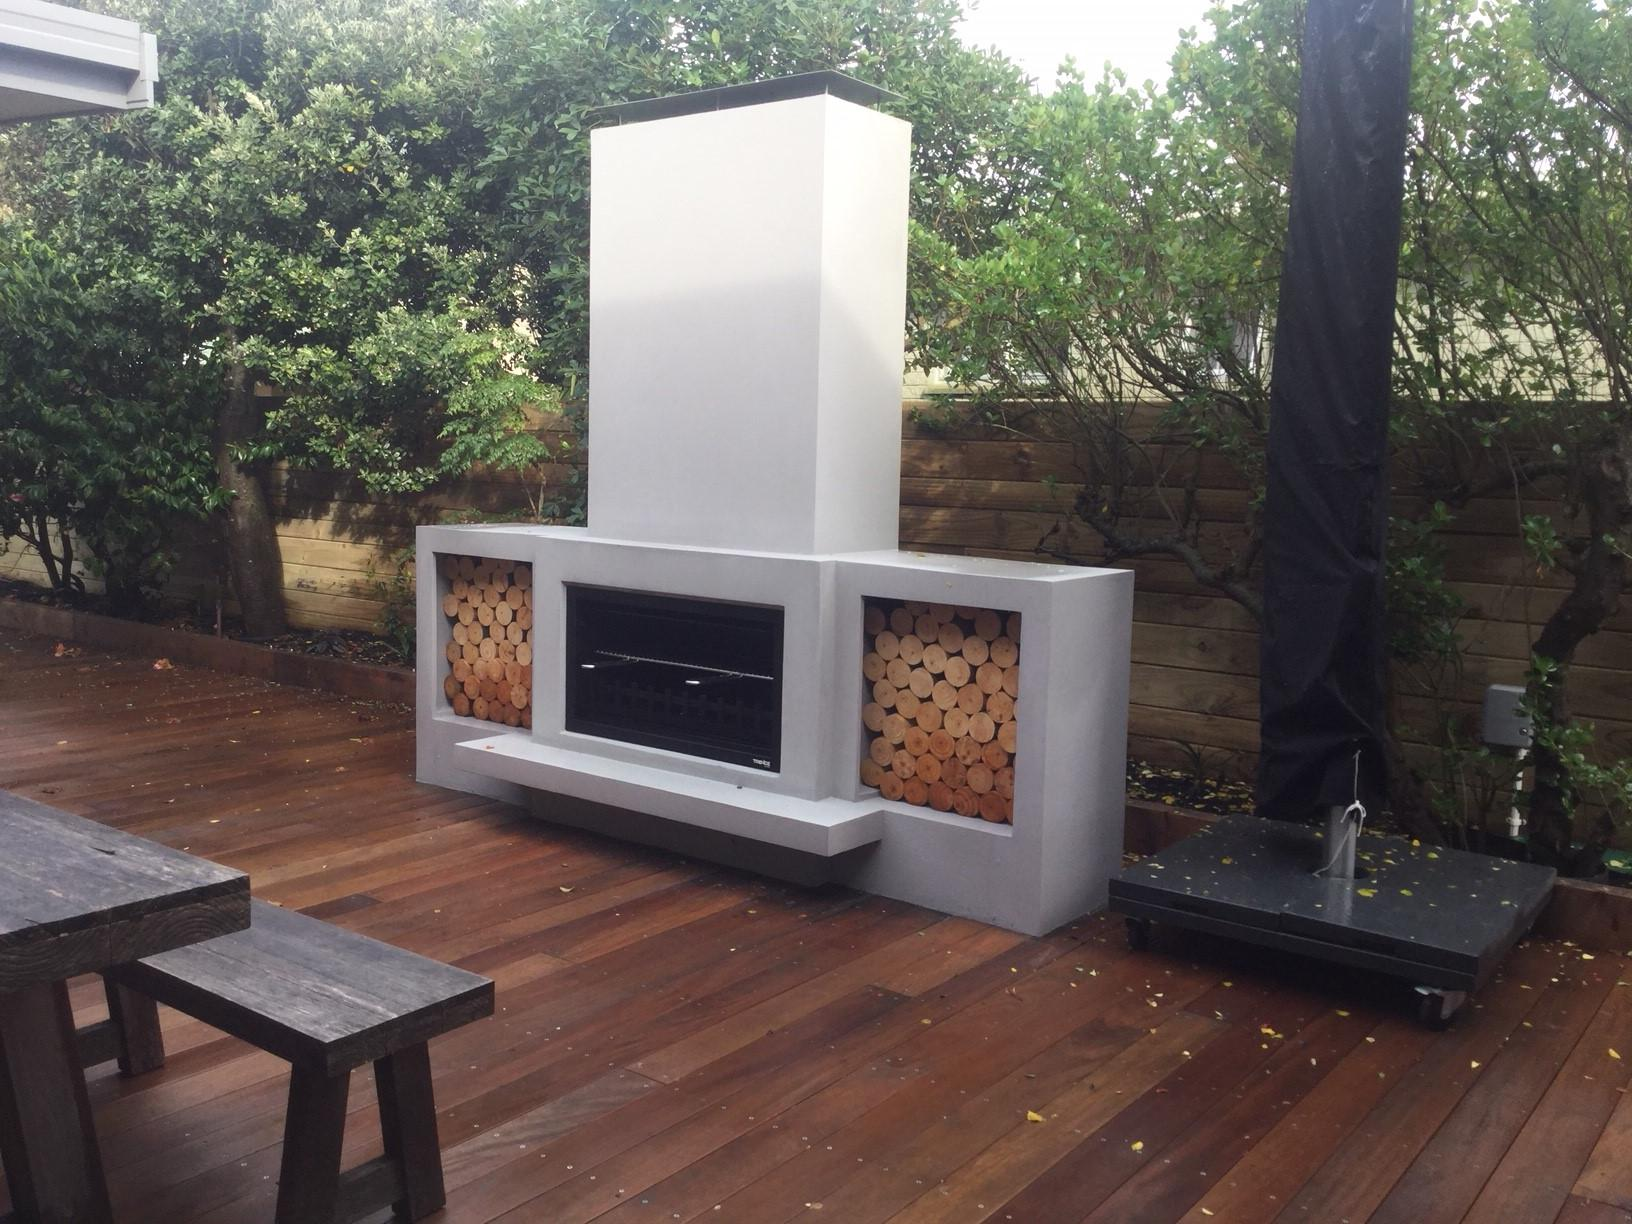 Woodboxes built into the outdoor fireplace